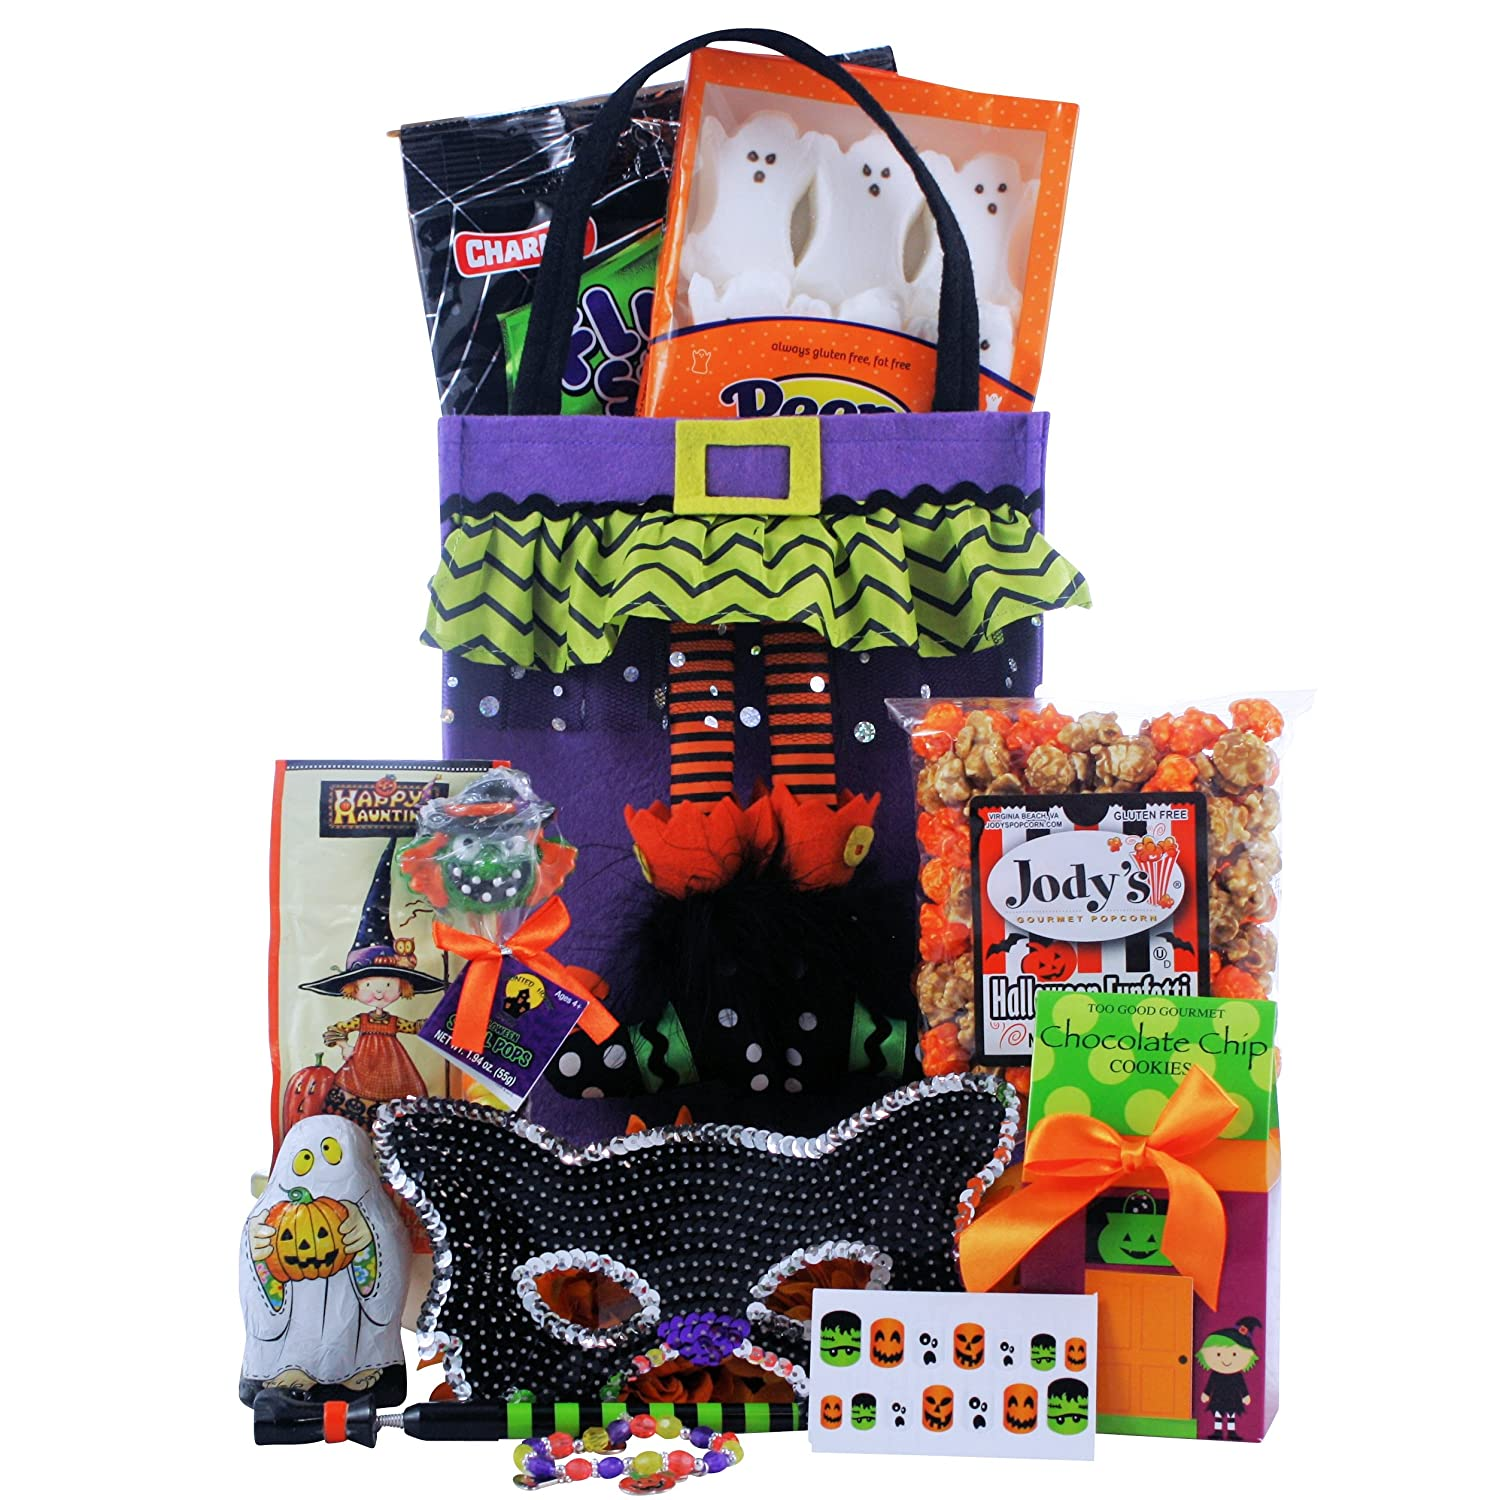 Amazon sparkly spooky fun halloween gift basket tween amazon sparkly spooky fun halloween gift basket tween girl ages 9 to 12 gourmet candy gifts grocery gourmet food negle Image collections